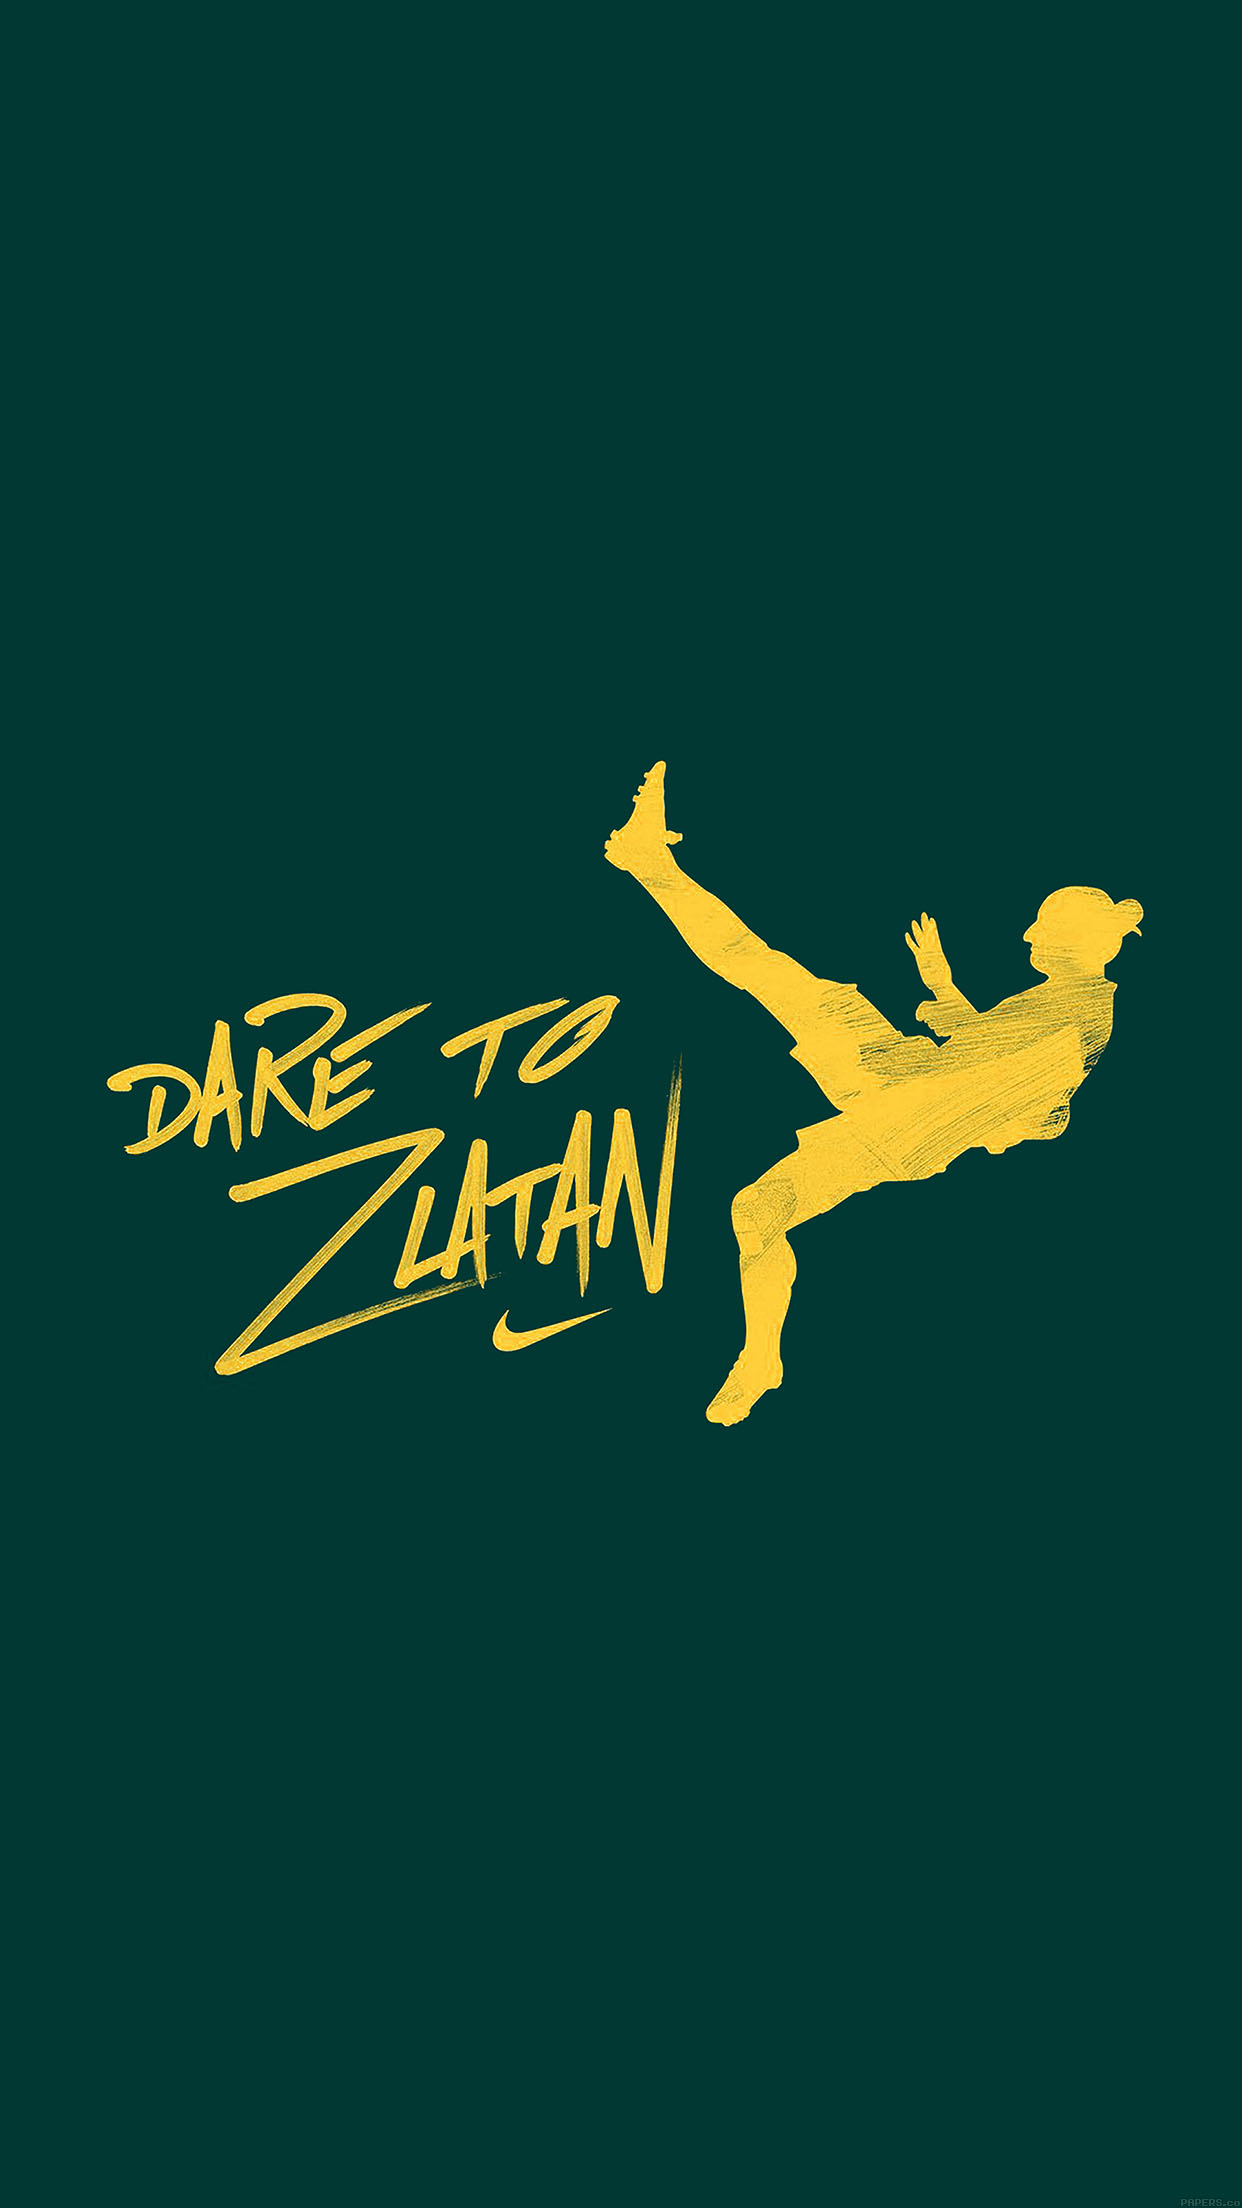 Hd Car Wallpaper For Iphone 6 Aa53 Dare To Zlatan Green Sports Art Papers Co